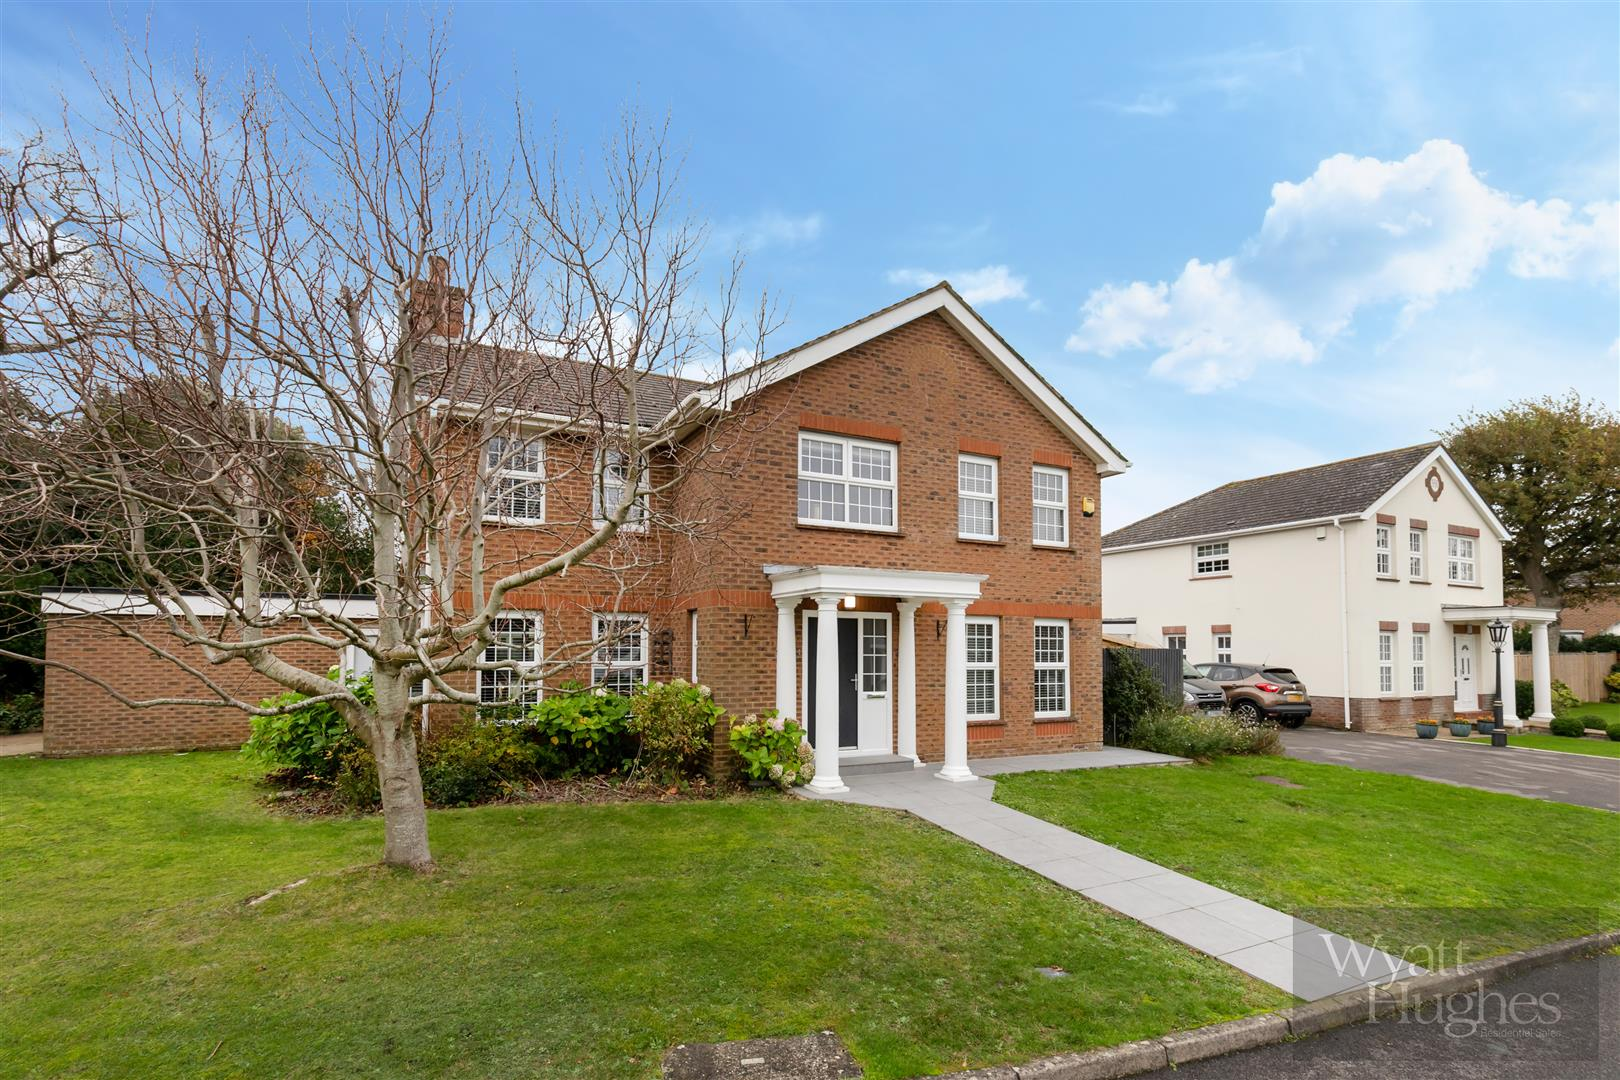 4 bed house for sale in Summer Hill, St. Leonards-On-Sea, TN38